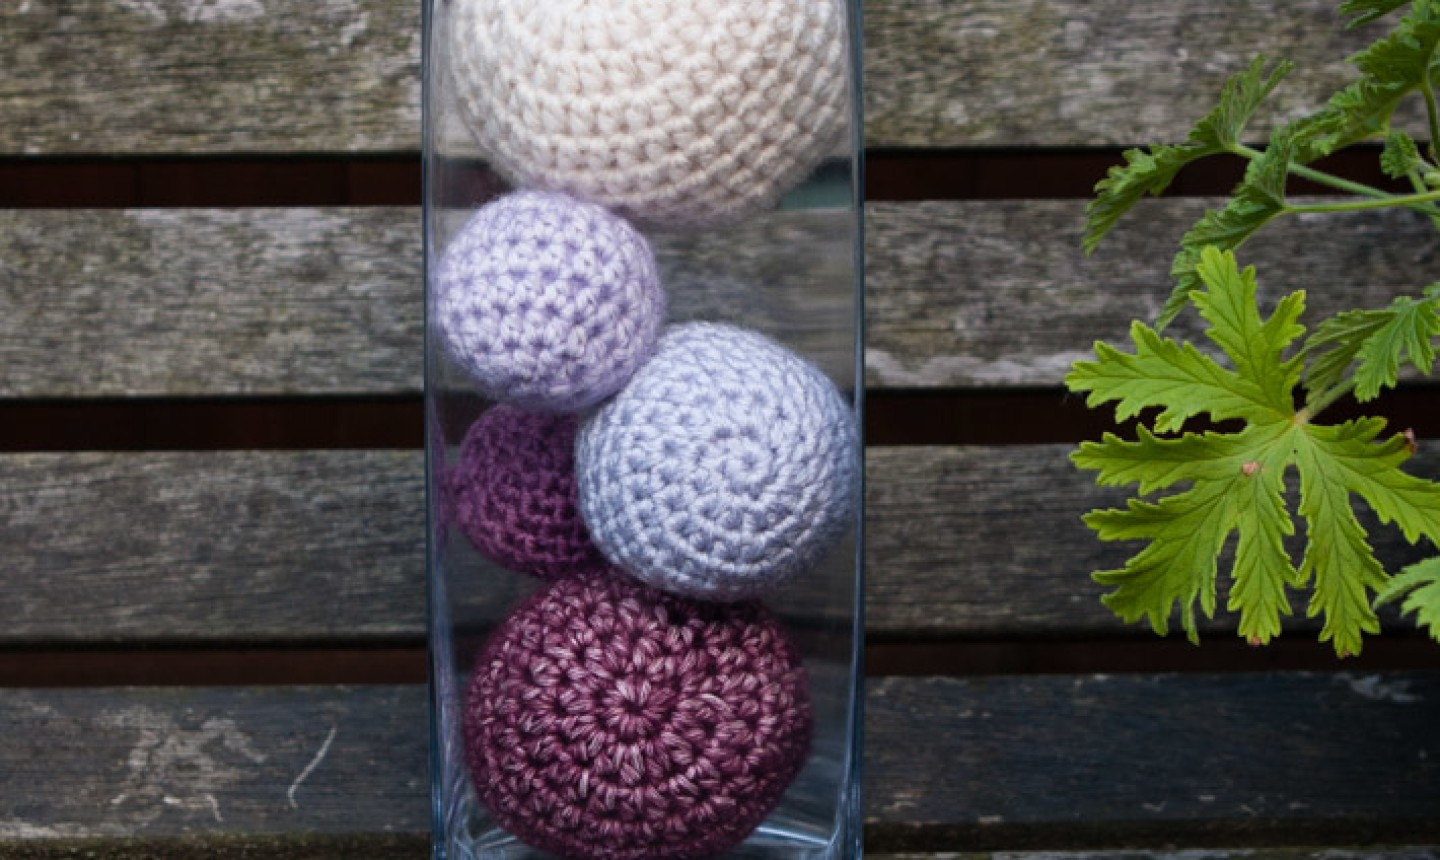 Crochet Ball Pattern How To Crochet Balls Of Any Size Using A Simple Ratio